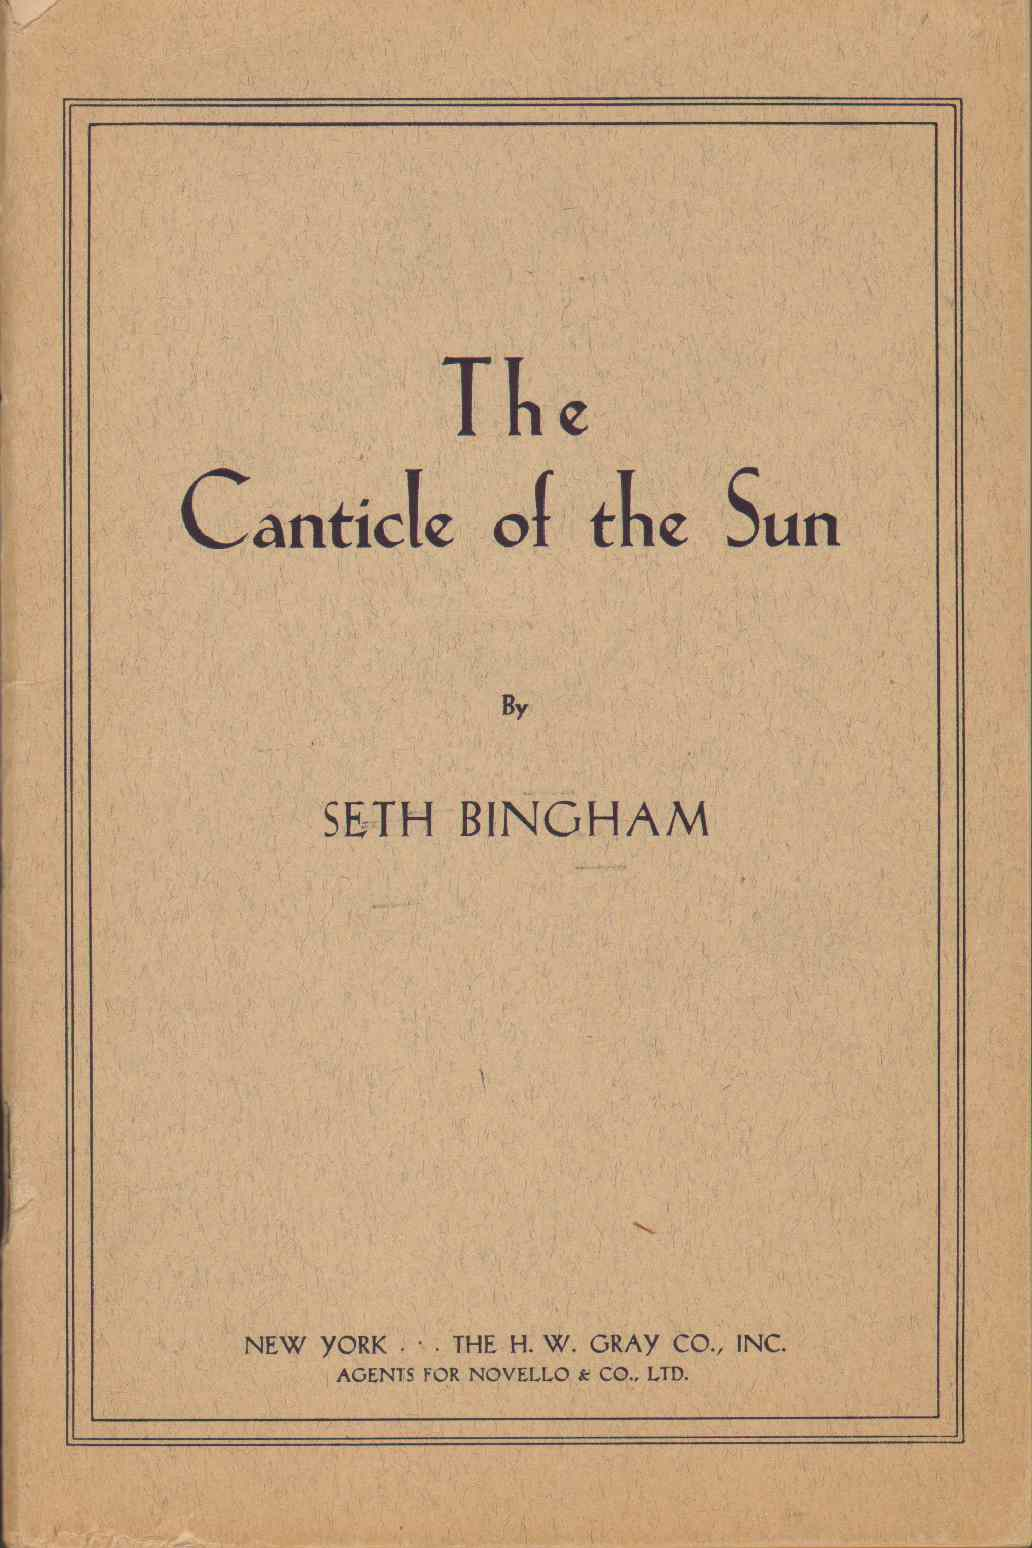 Image for THE CANTICLE OF THE SUN Canata for Chorus Mixed Voices with Soli Ad Lib. and Accompaniment for Organ or Orchestra